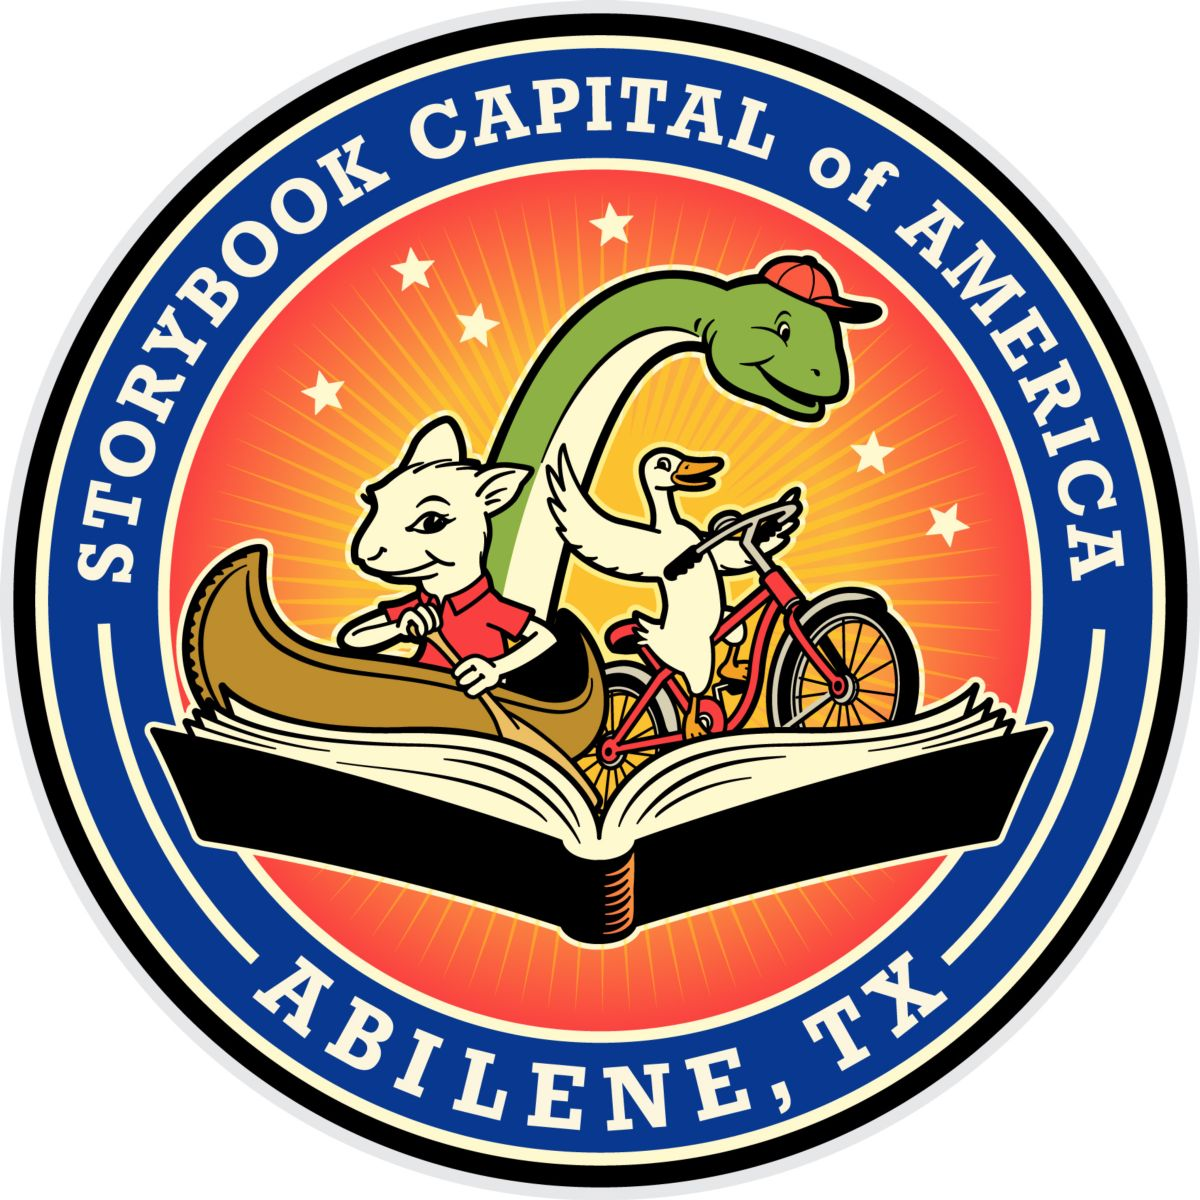 storybook capital of america_fullcolor_outlined.jpg